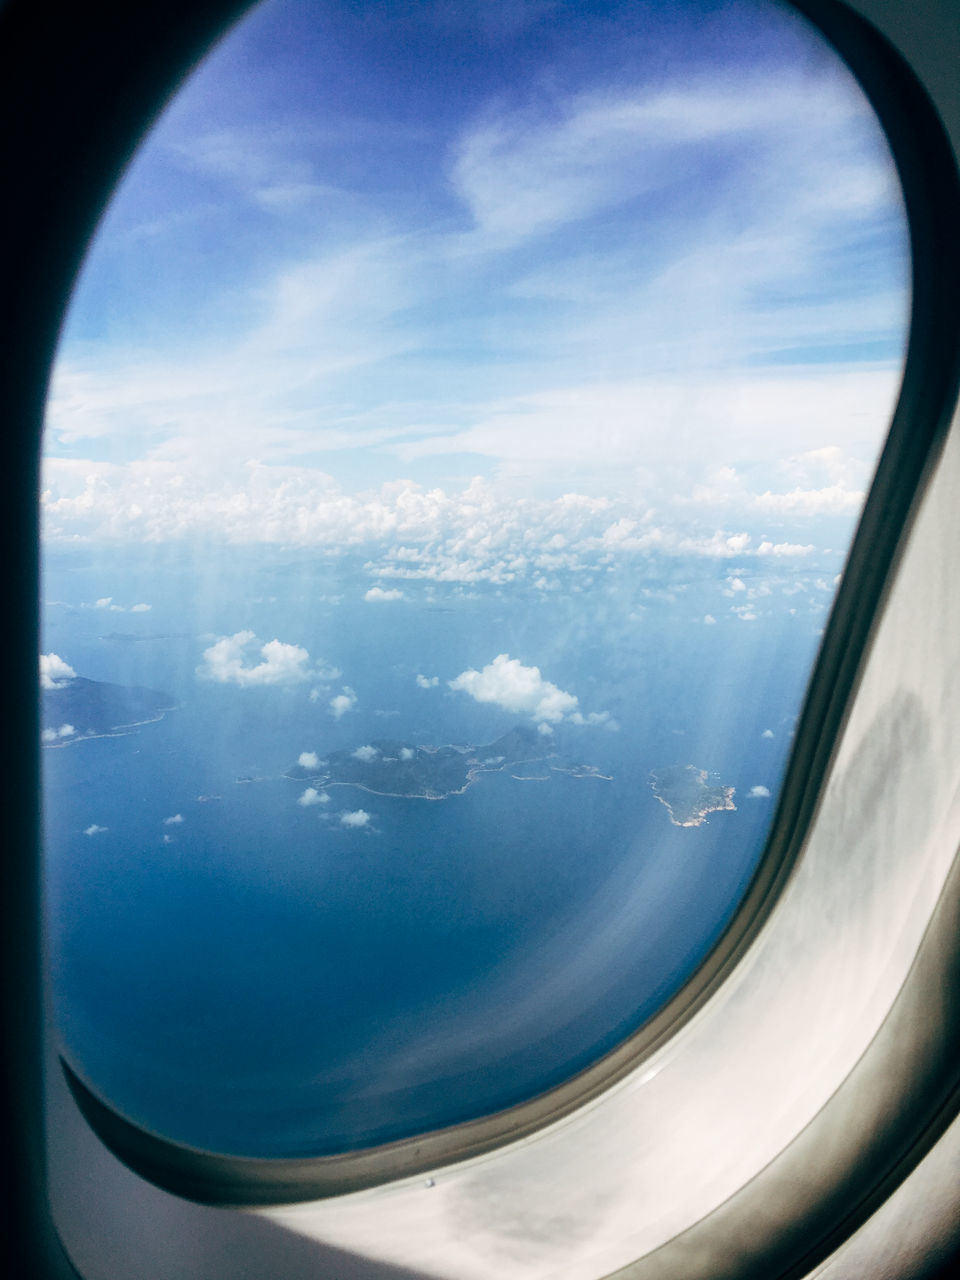 sky, airplane, cloud - sky, beauty in nature, journey, transportation, travel, no people, nature, window, day, blue, sea, airplane wing, scenics, landscape, outdoors, vehicle part, air vehicle, close-up